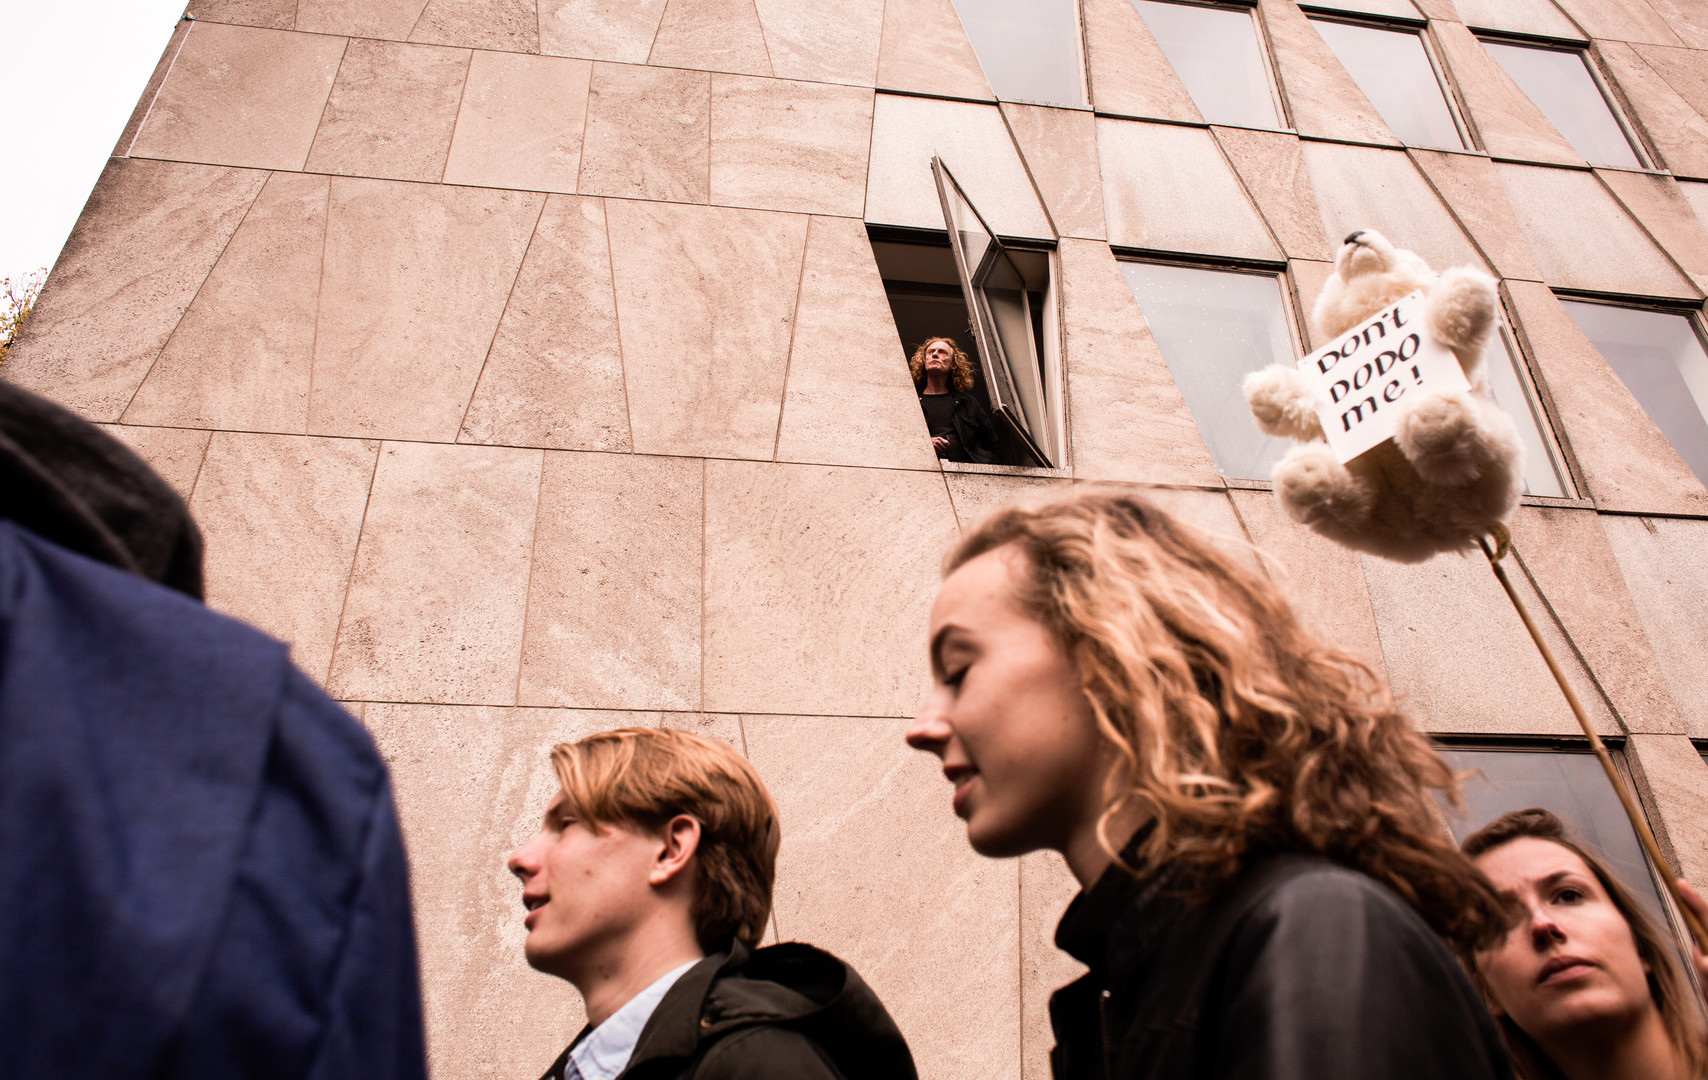 Someone watches out his window as the street is filled with protestors at the first general climate strike in Den Haag, The Netherlands, on September 27, 2019. Building on the youth climate strikes that began almost a year ago, an estimated 35,000 people of all ages gathered to demand change in Dutch and international climate policy. The strike was a part of the largest international climate mobilization in history.